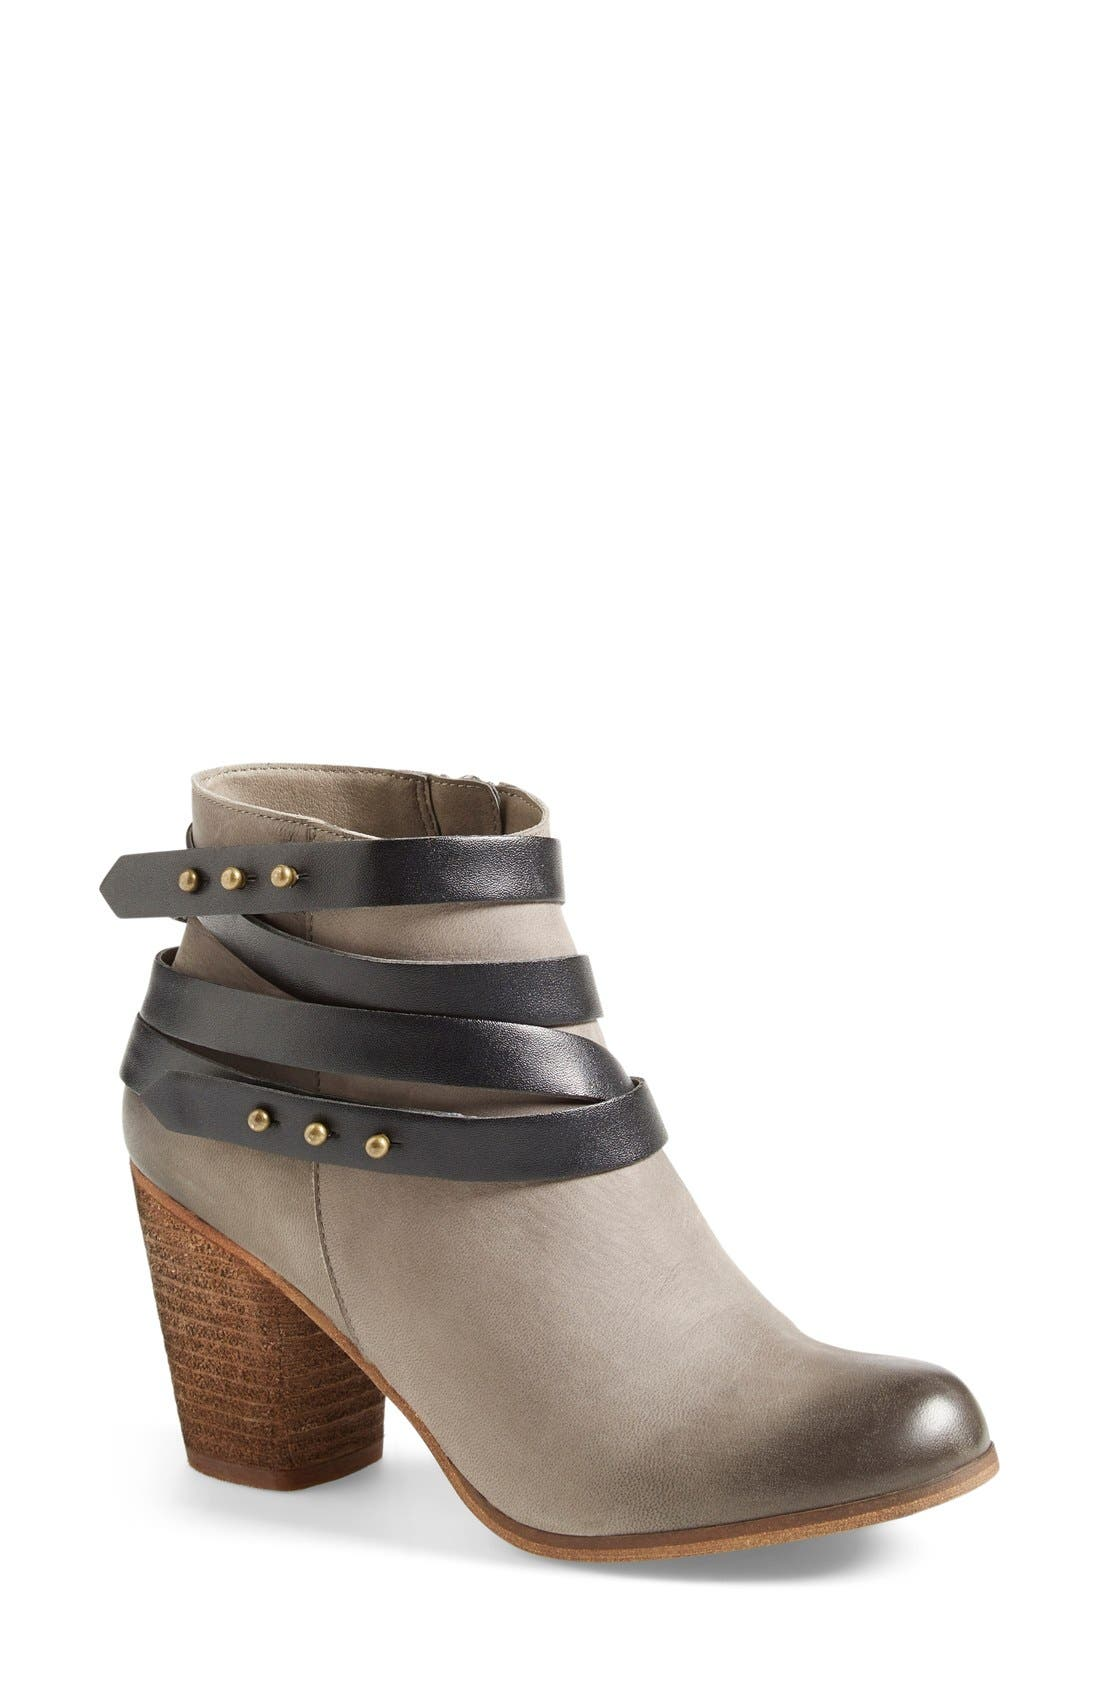 Main Image - BP. 'Train' Wrap Belted Bootie (Women)